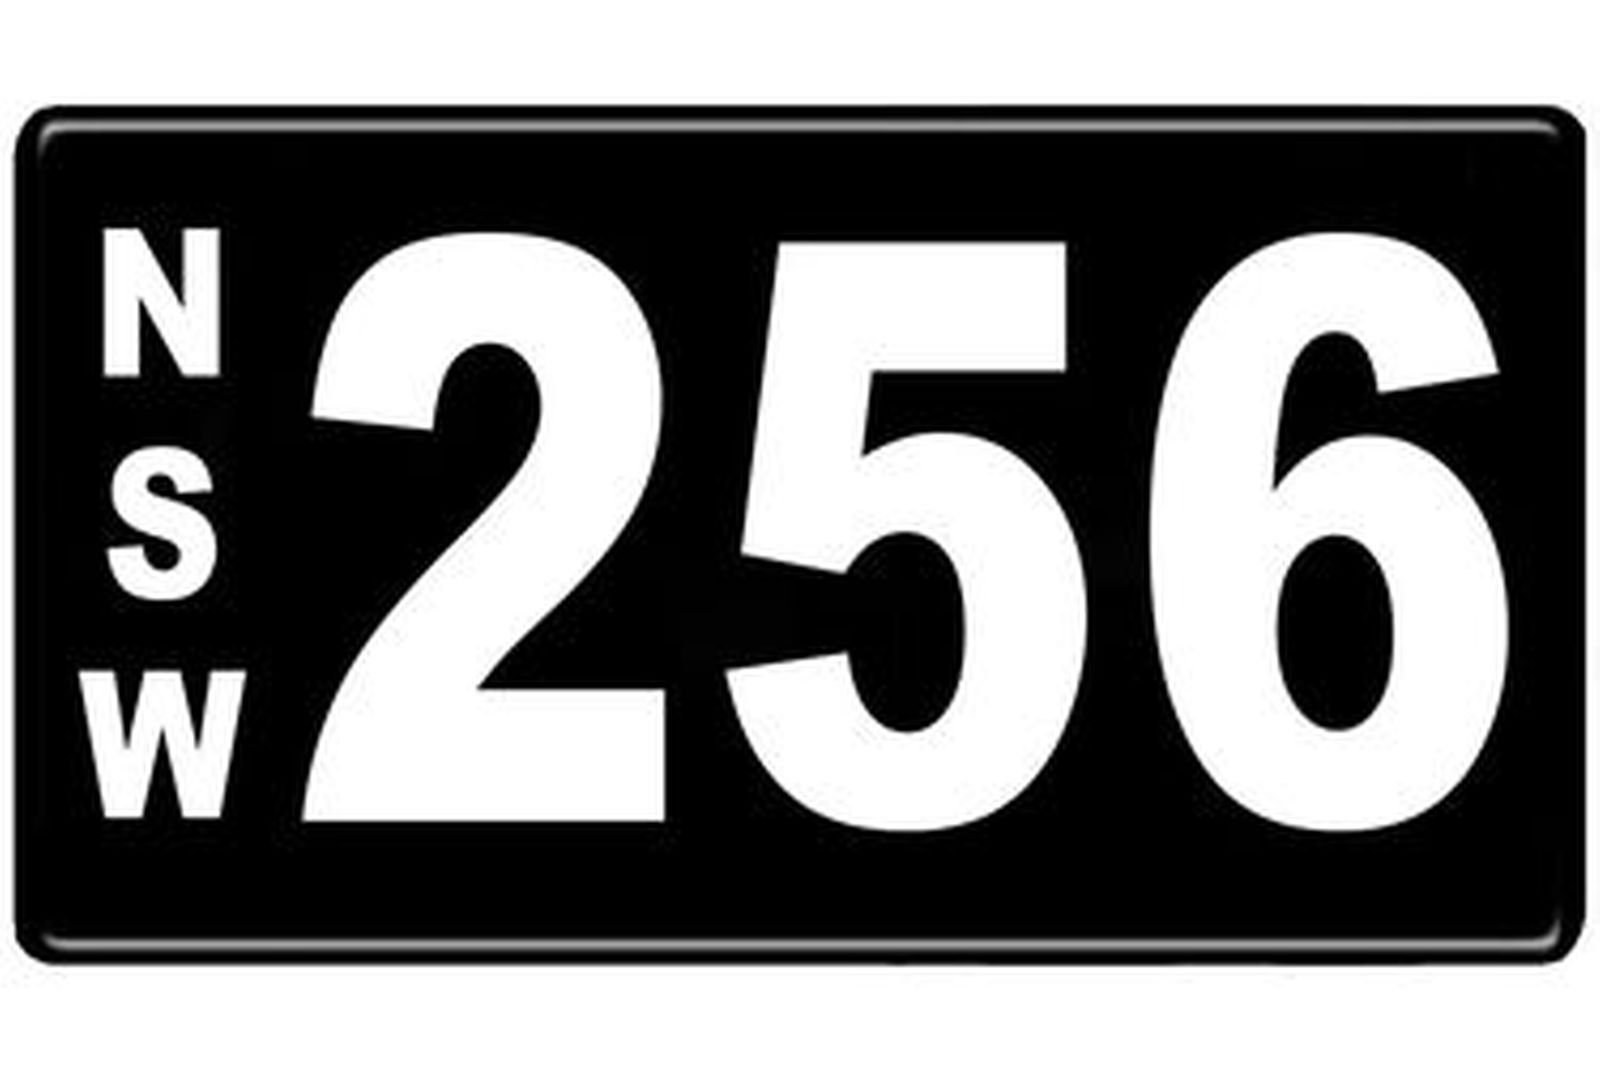 Number Plates - NSW Numerical Number Plates '256'